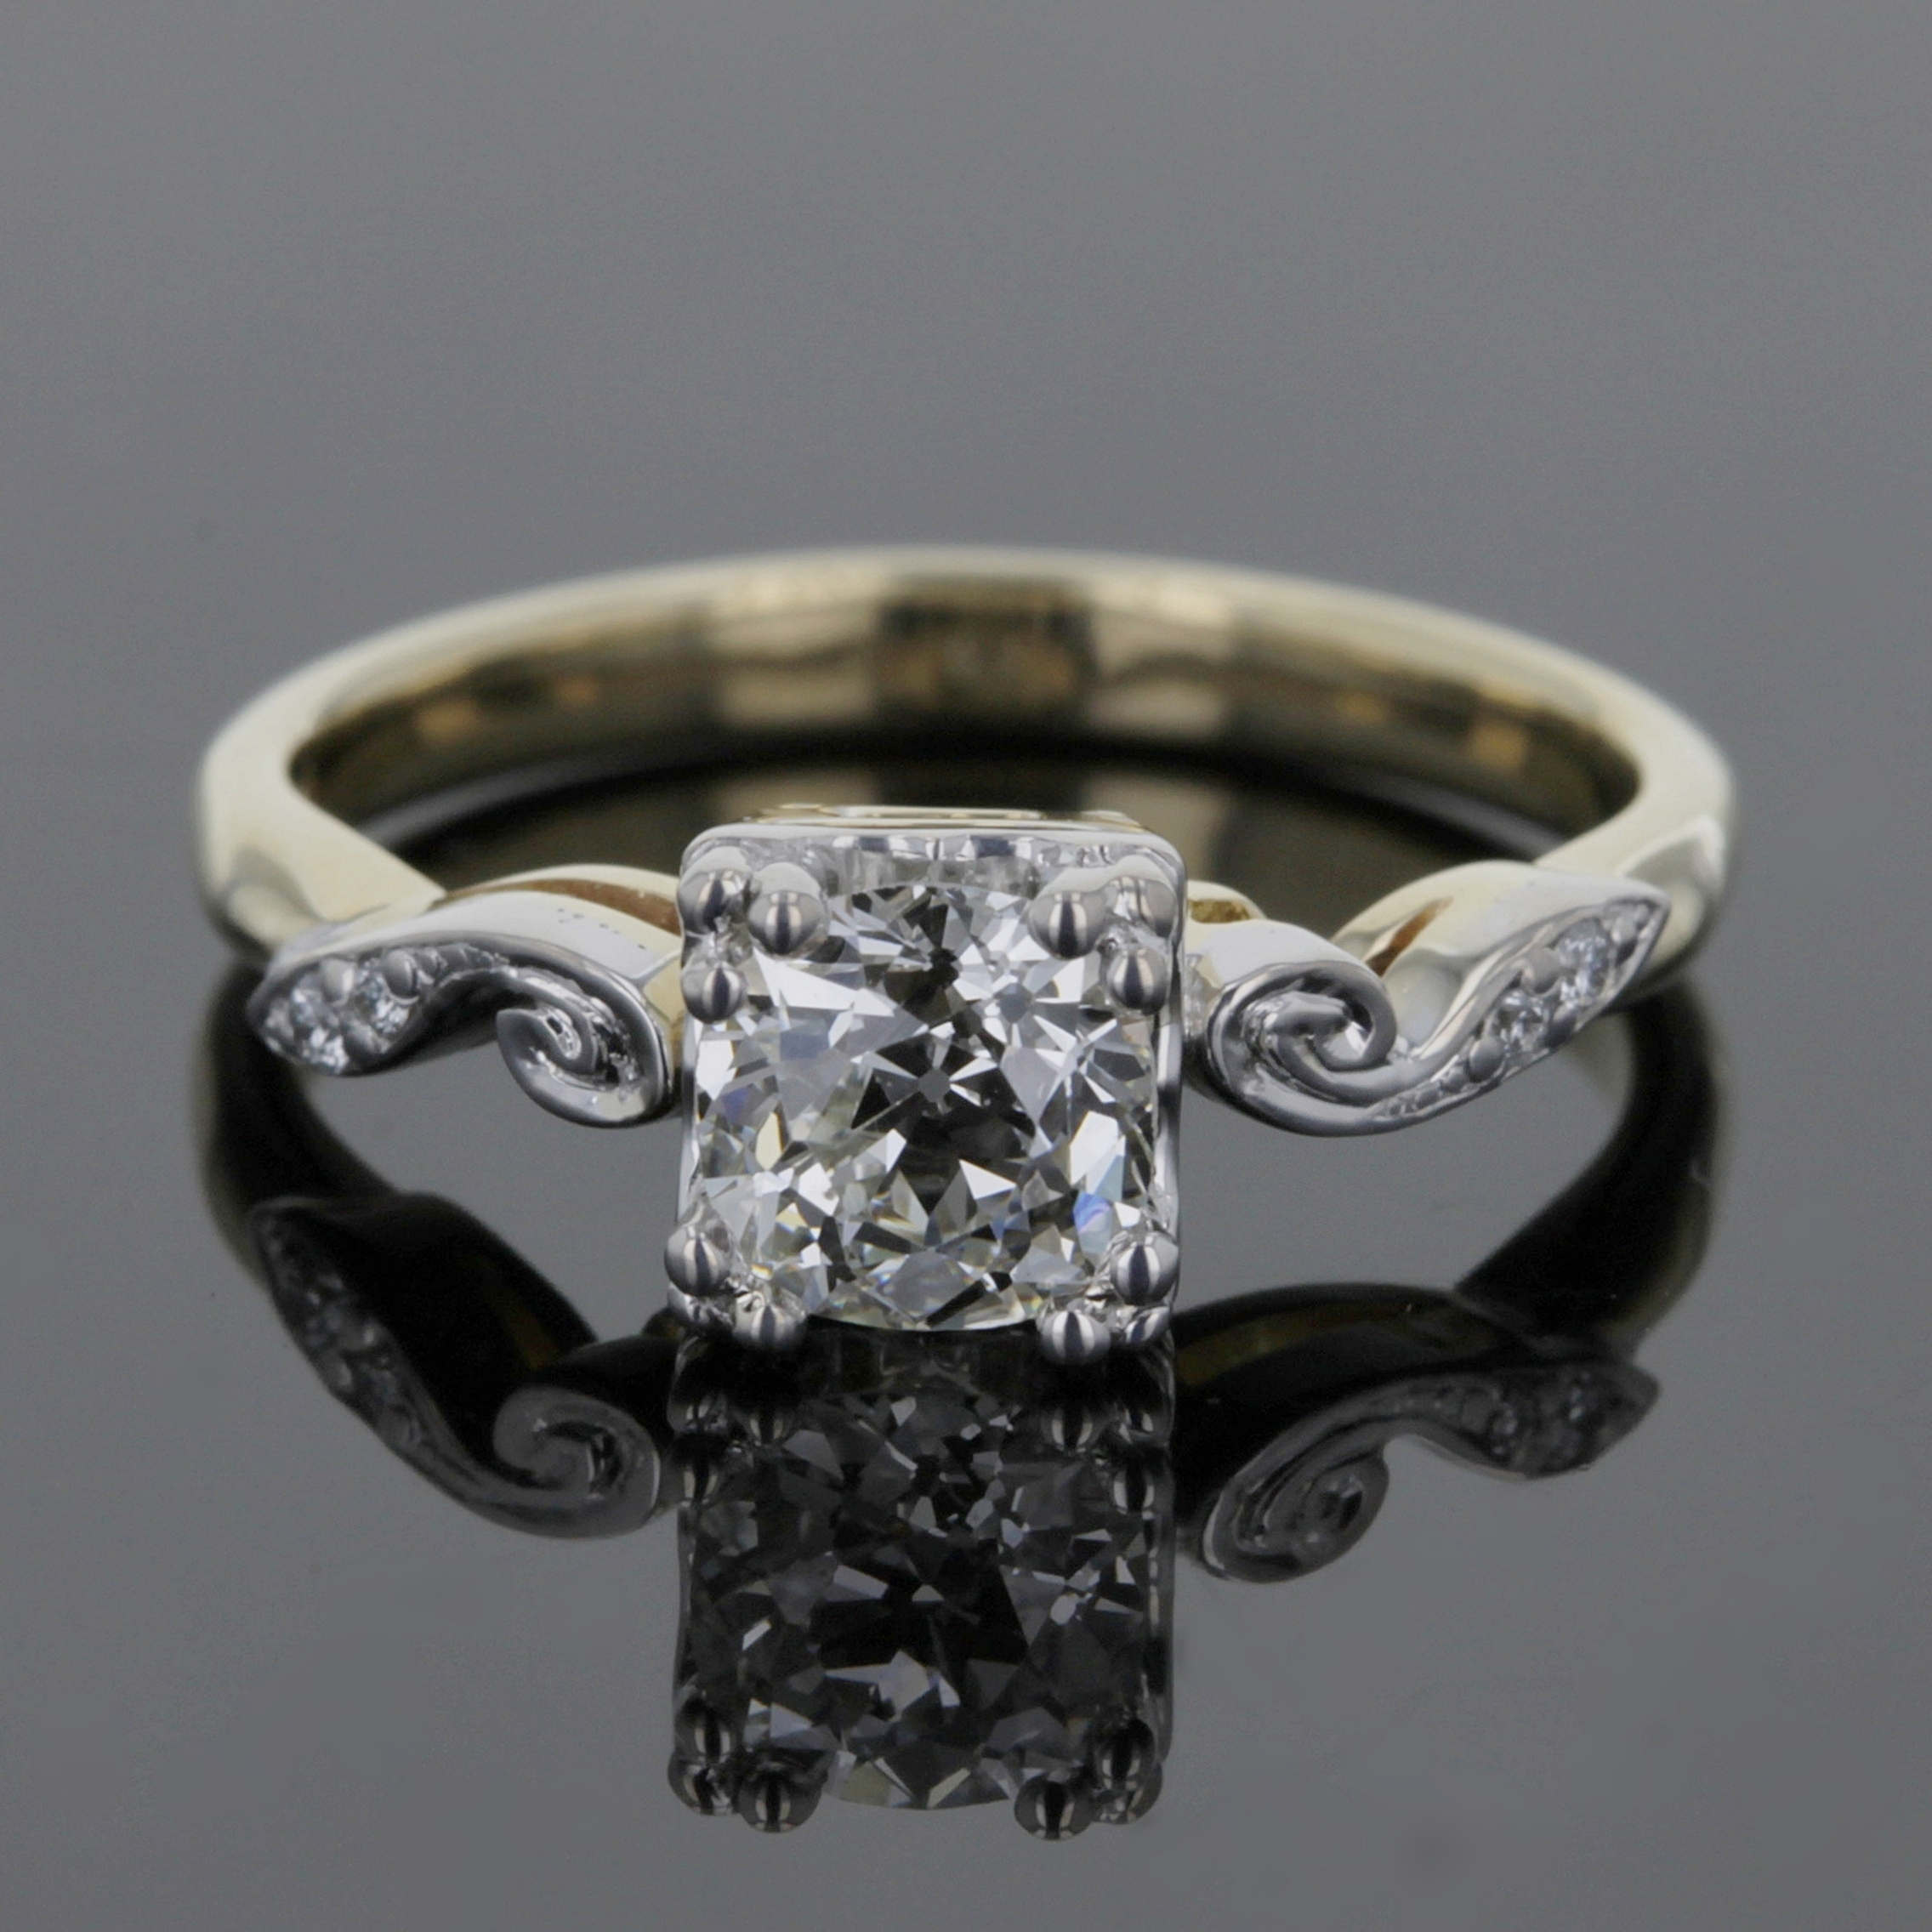 Custom vintage inspired solitaire